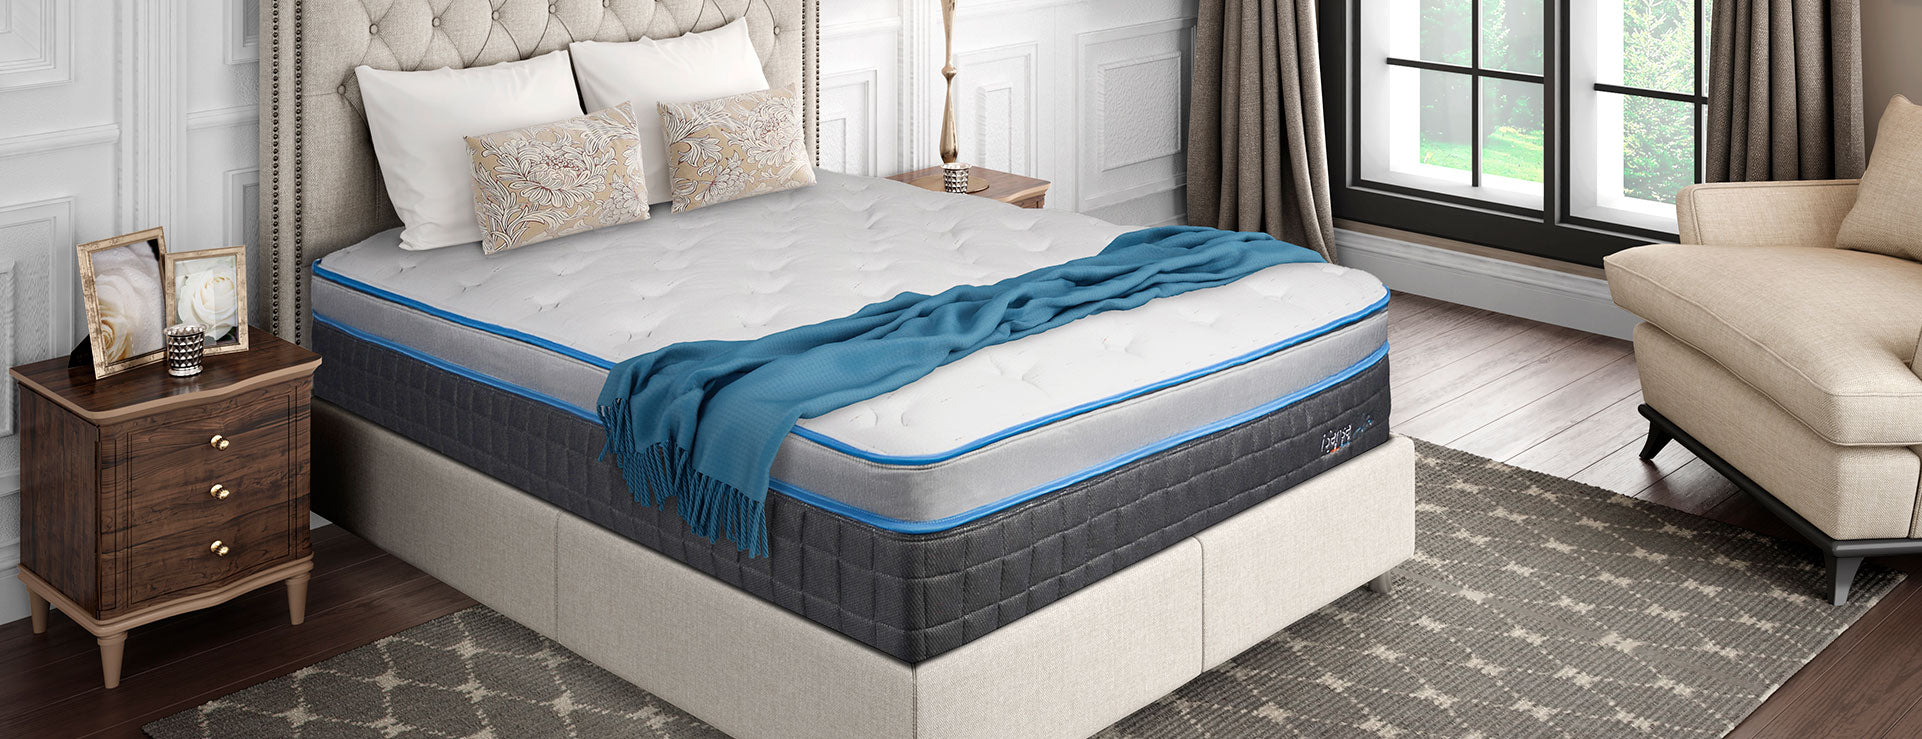 COMFORT CONTROL Air Mattress - King Split